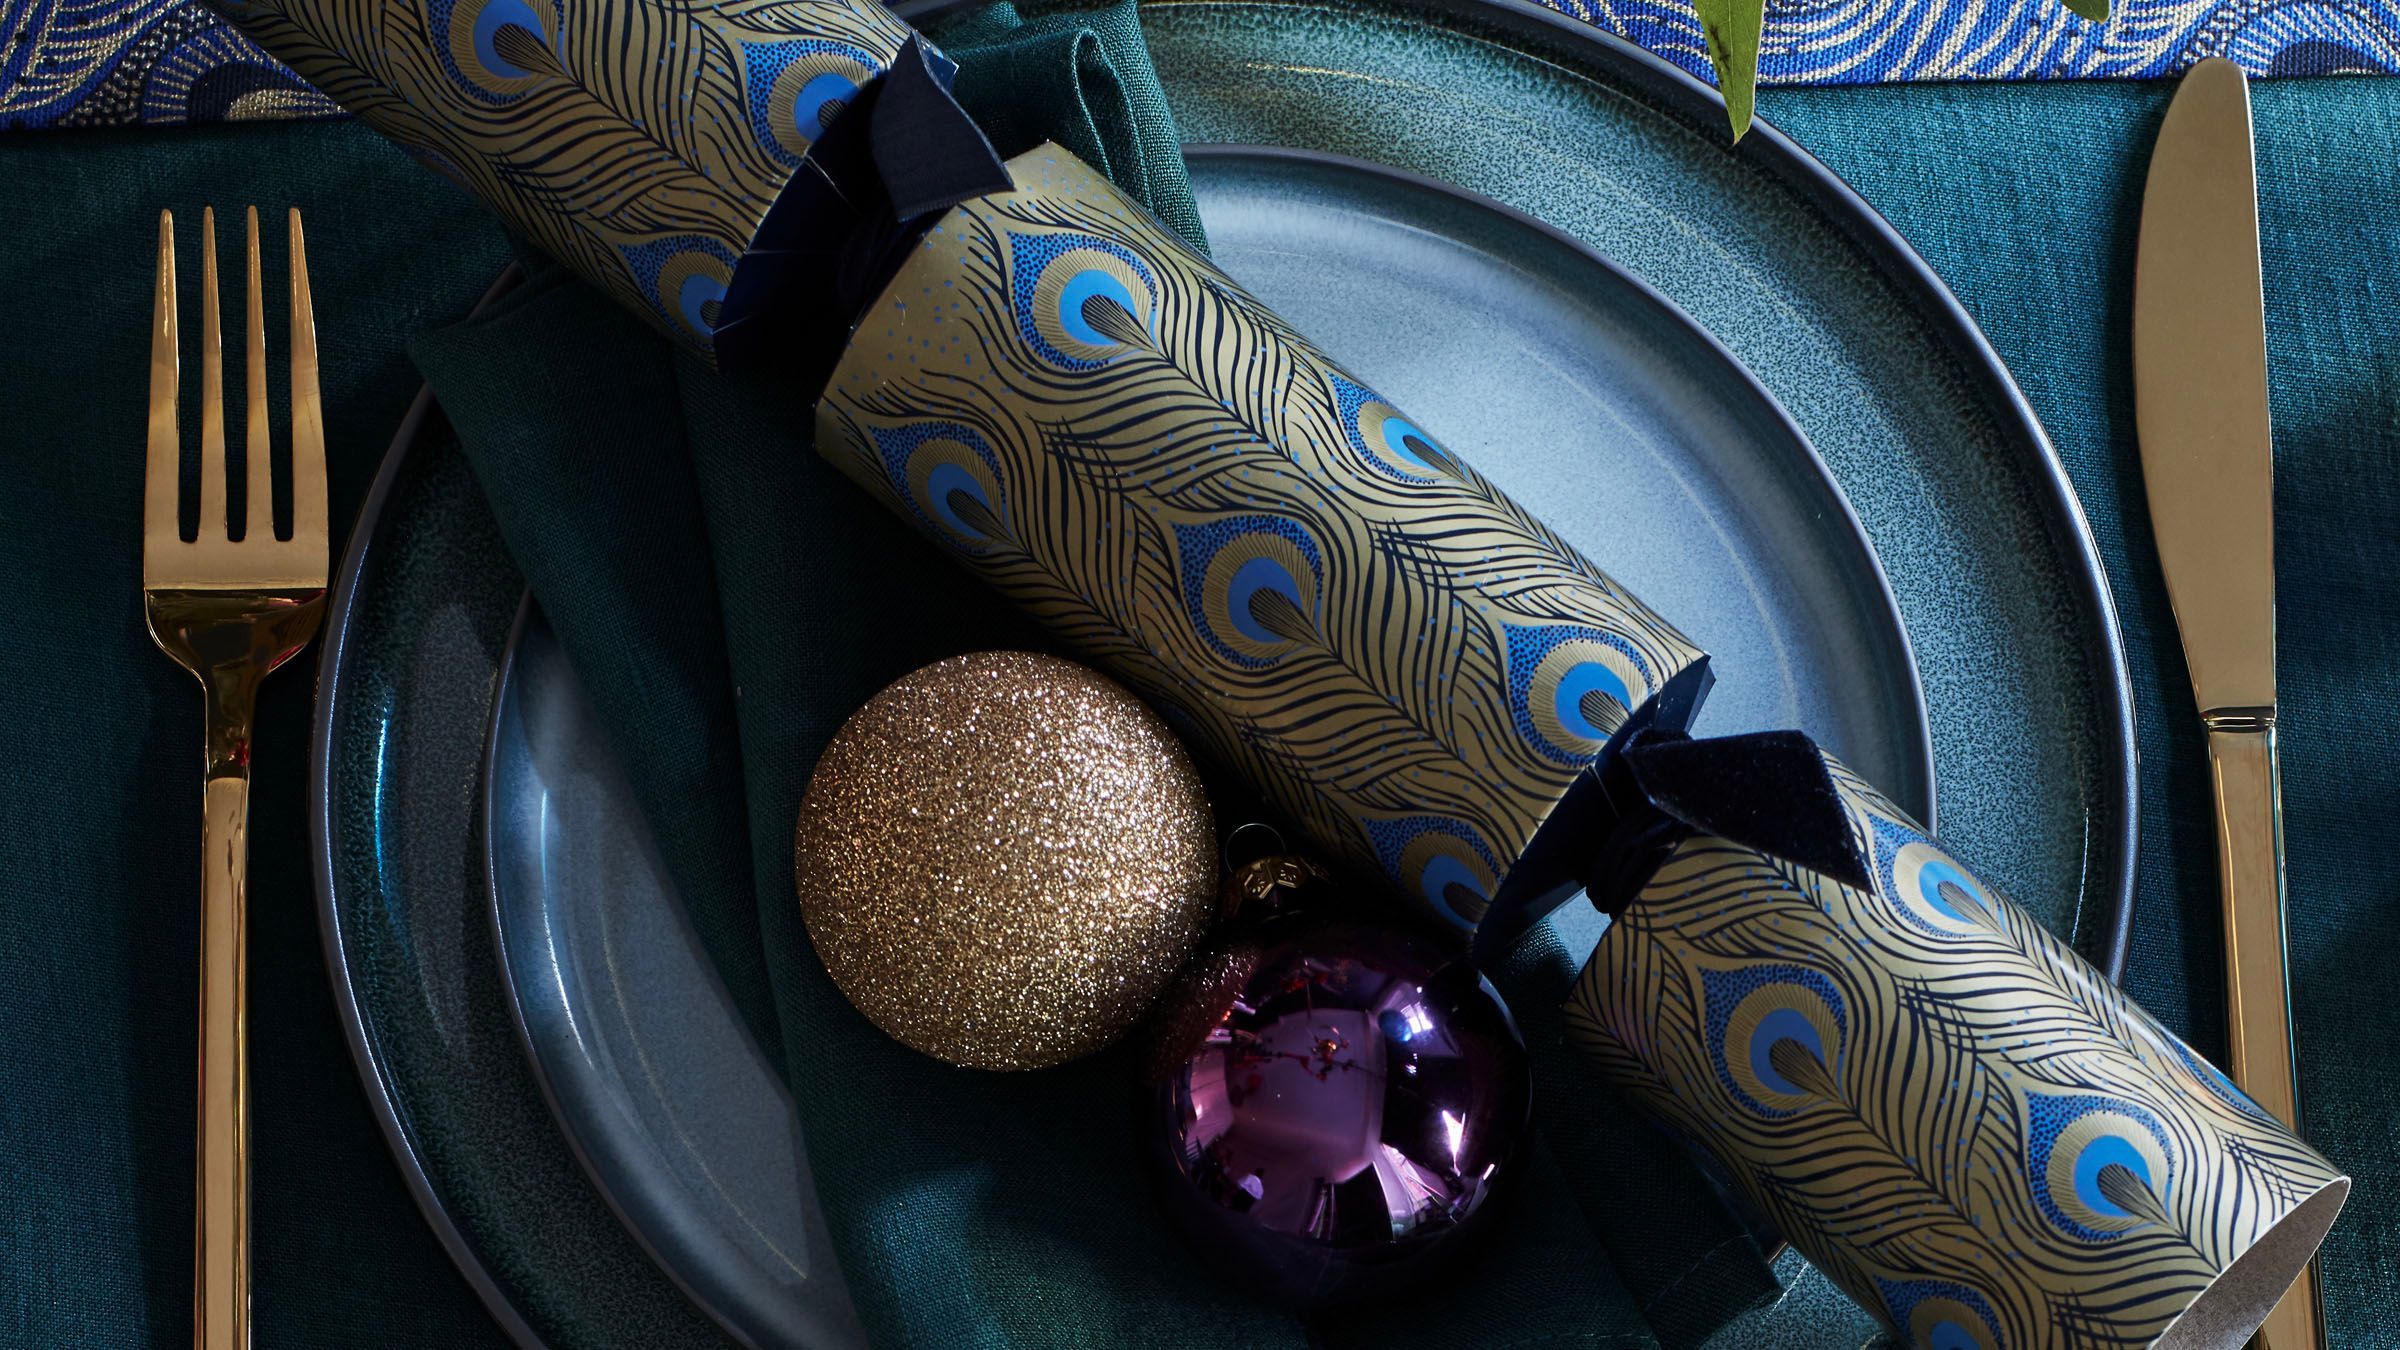 Set the table - Christmas tableware